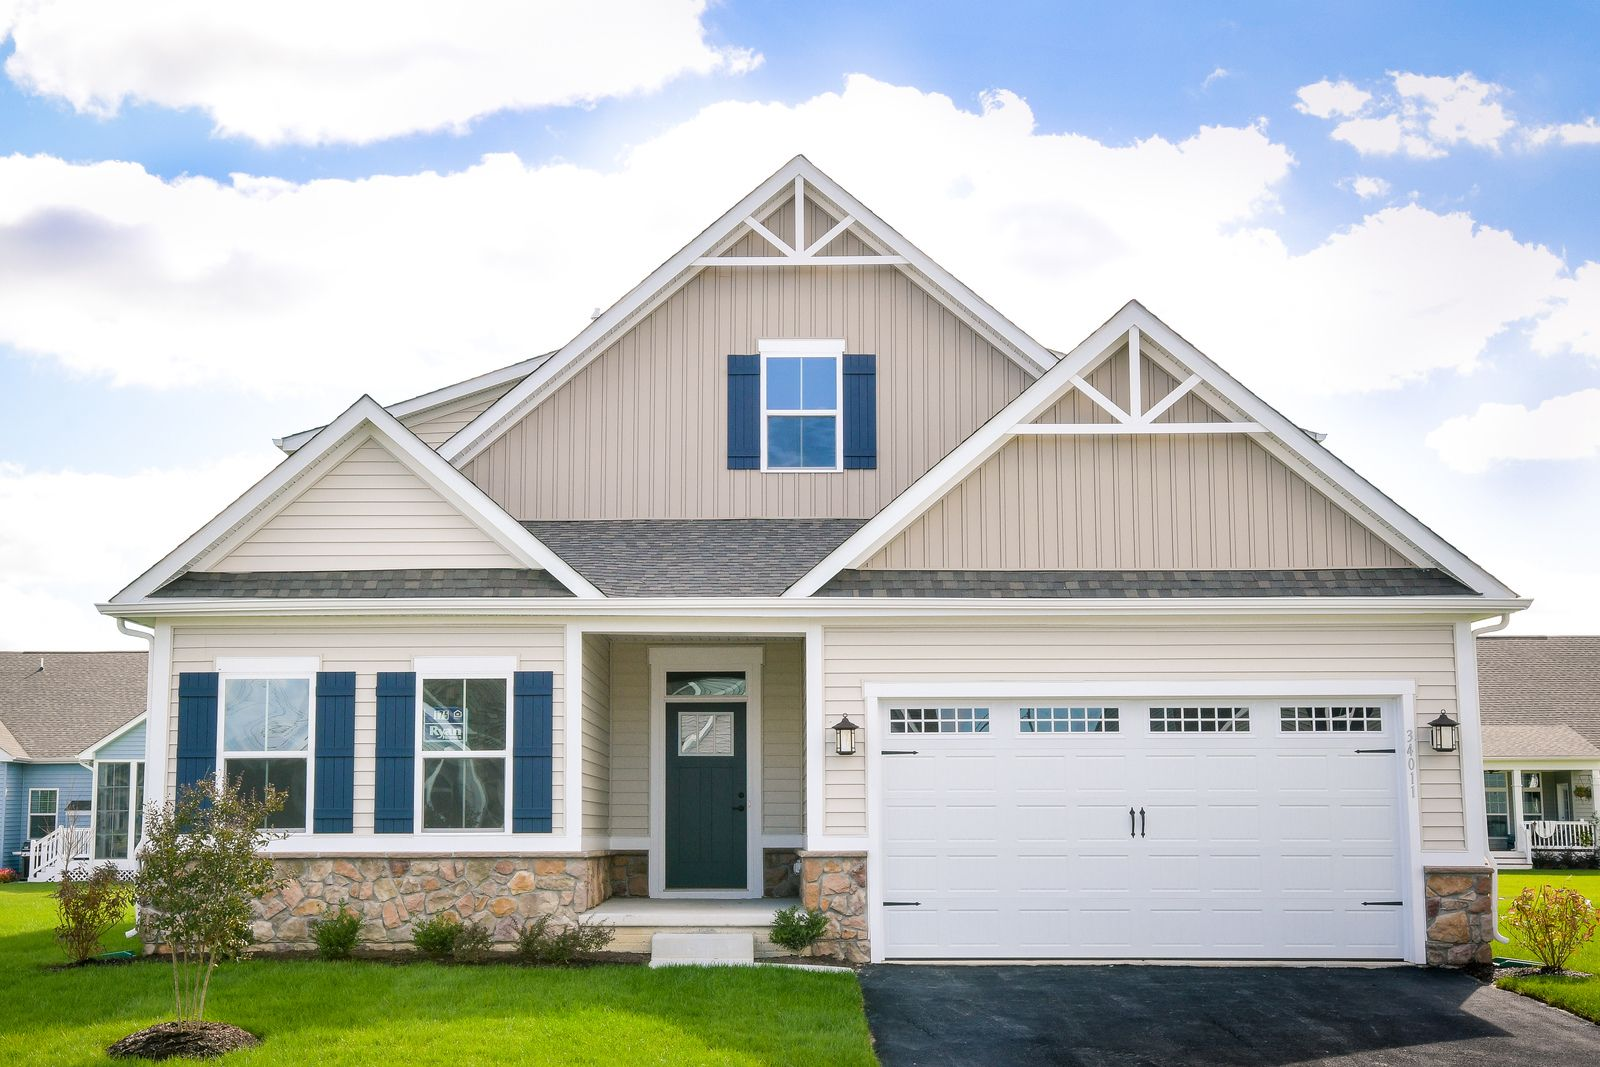 'Riverstone Cottages' by Ryan Homes-GVS in Greenville-Spartanburg